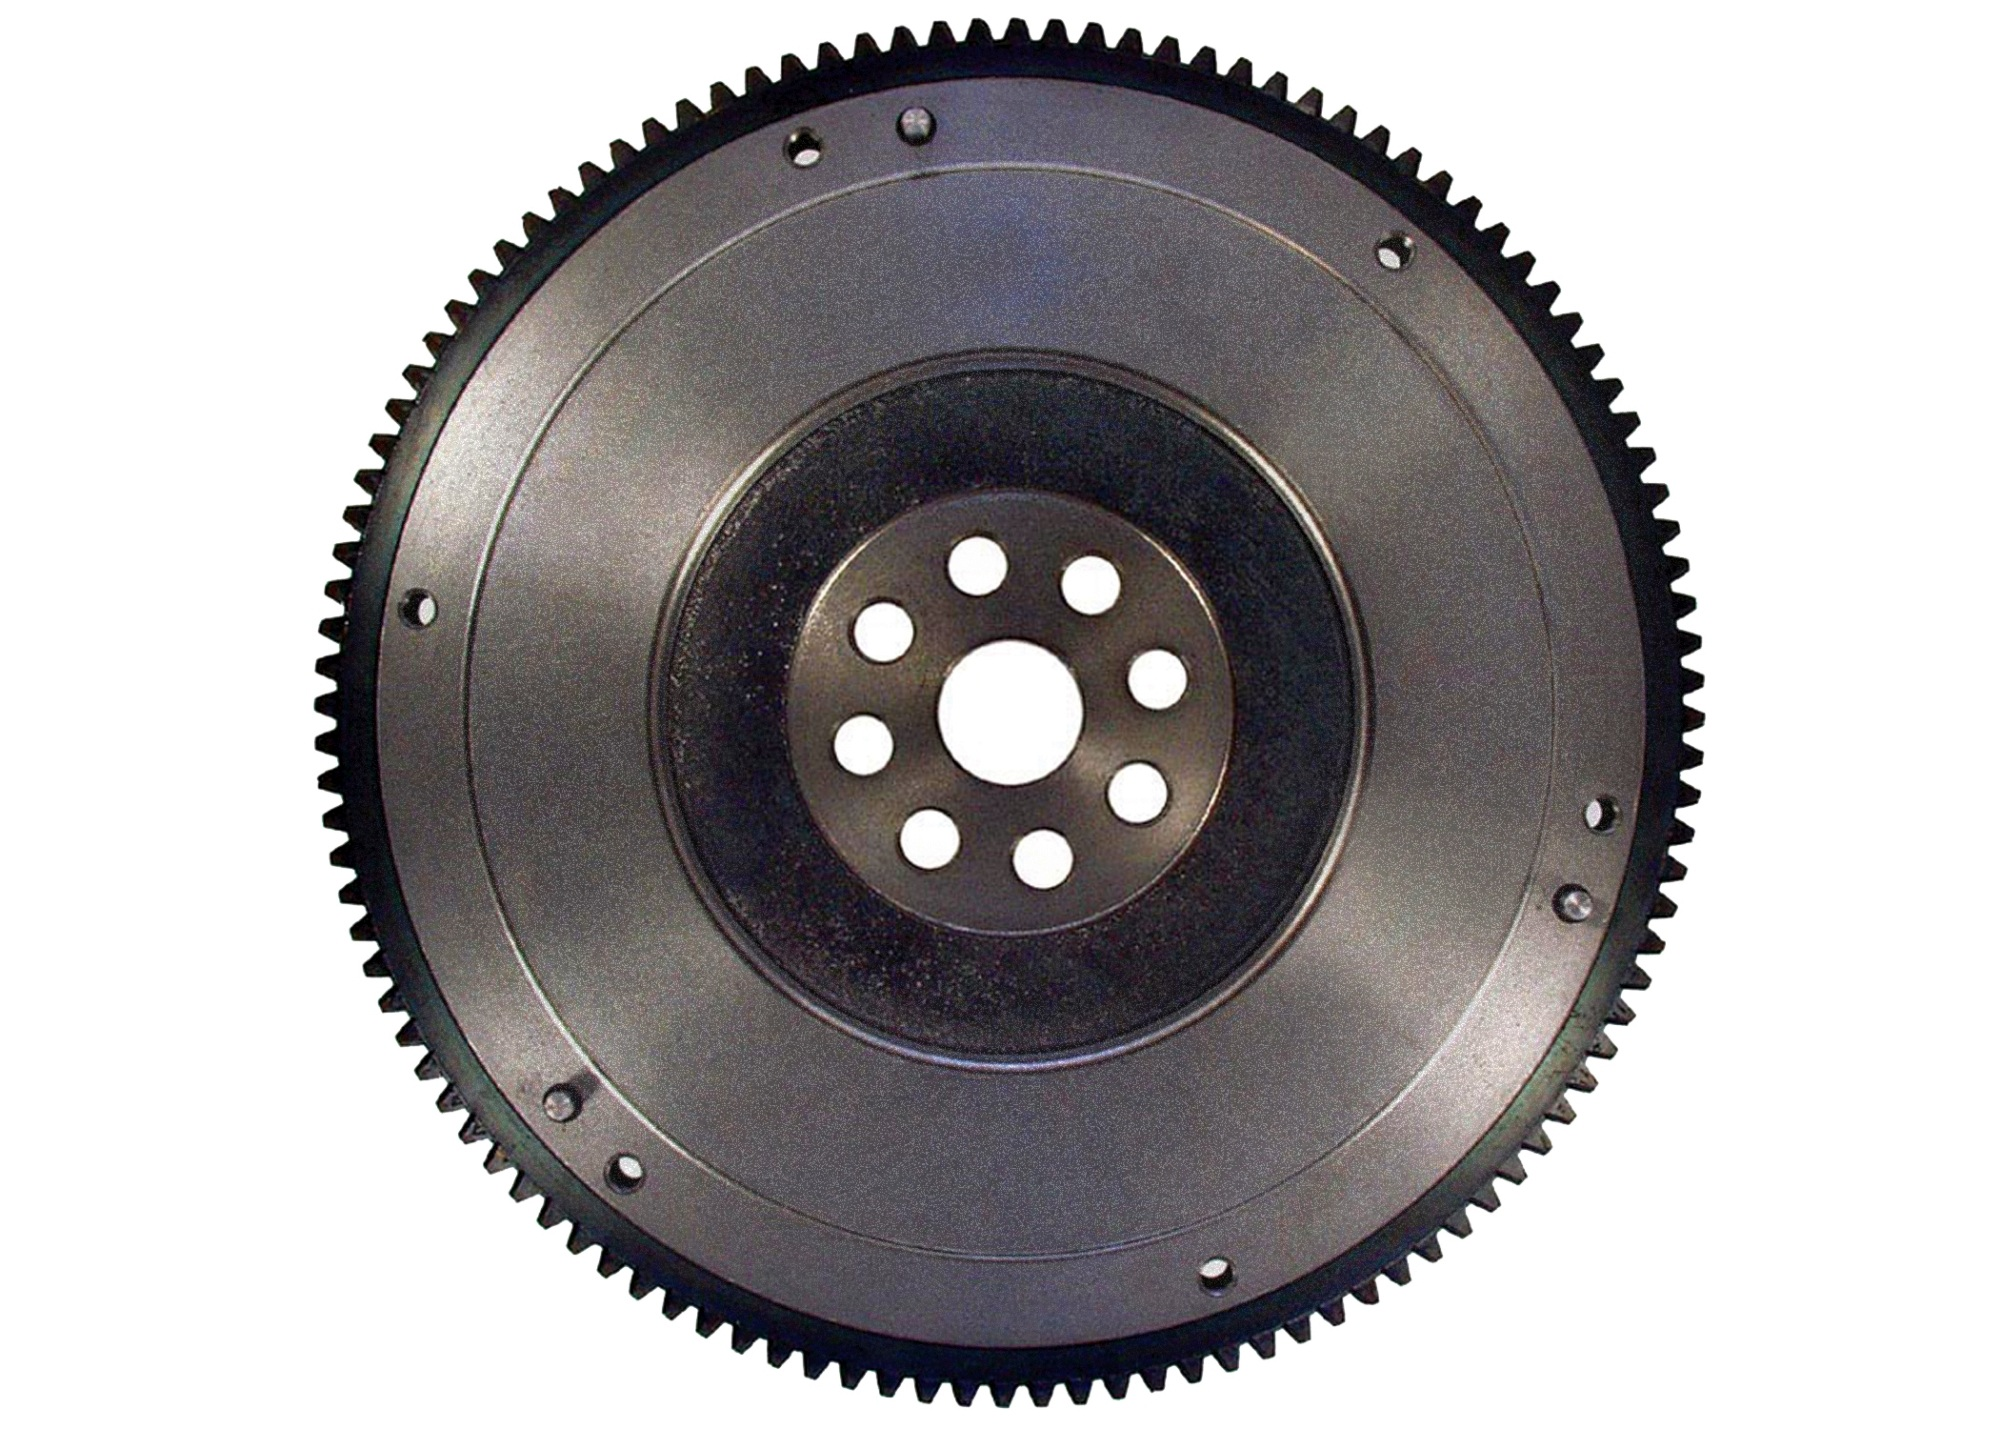 ACDELCO PROFESSIONAL - Clutch Flywheel - DCC 388089